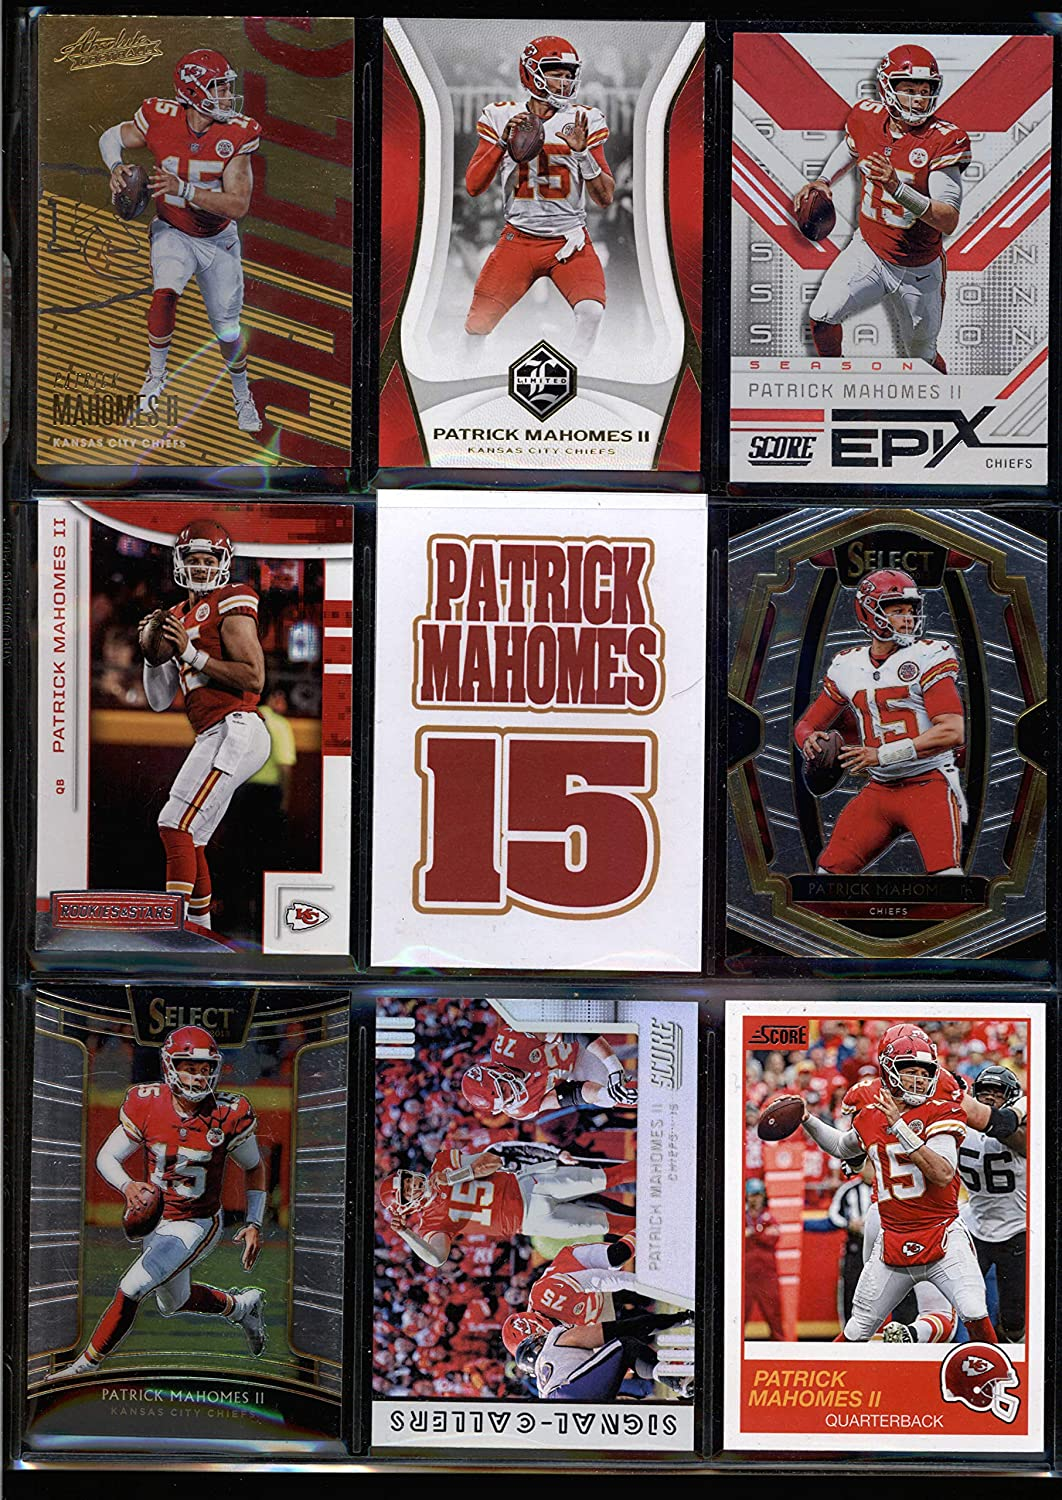 PATRICK MAHOMES 2019 Donruss Panini Lot of 9 Different Mixed Years Football Trading Cards Blind Pack Kansas City Chiefs w//Free Surprise Bonus Card!